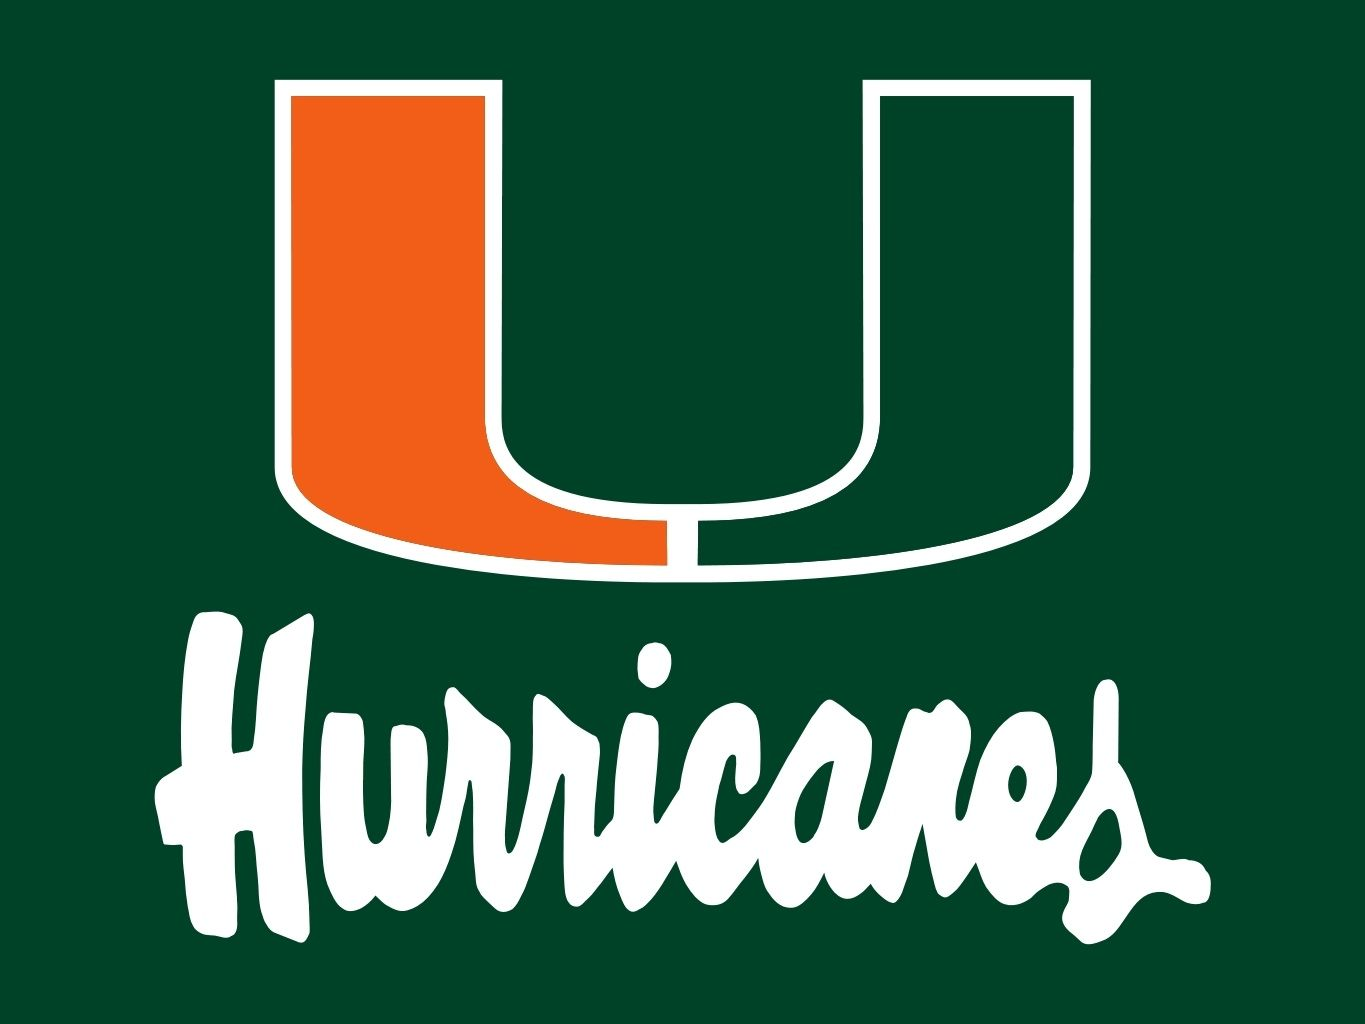 Miami investigation lawyer says shes a patsy miami hurricanes football team voltagebd Choice Image